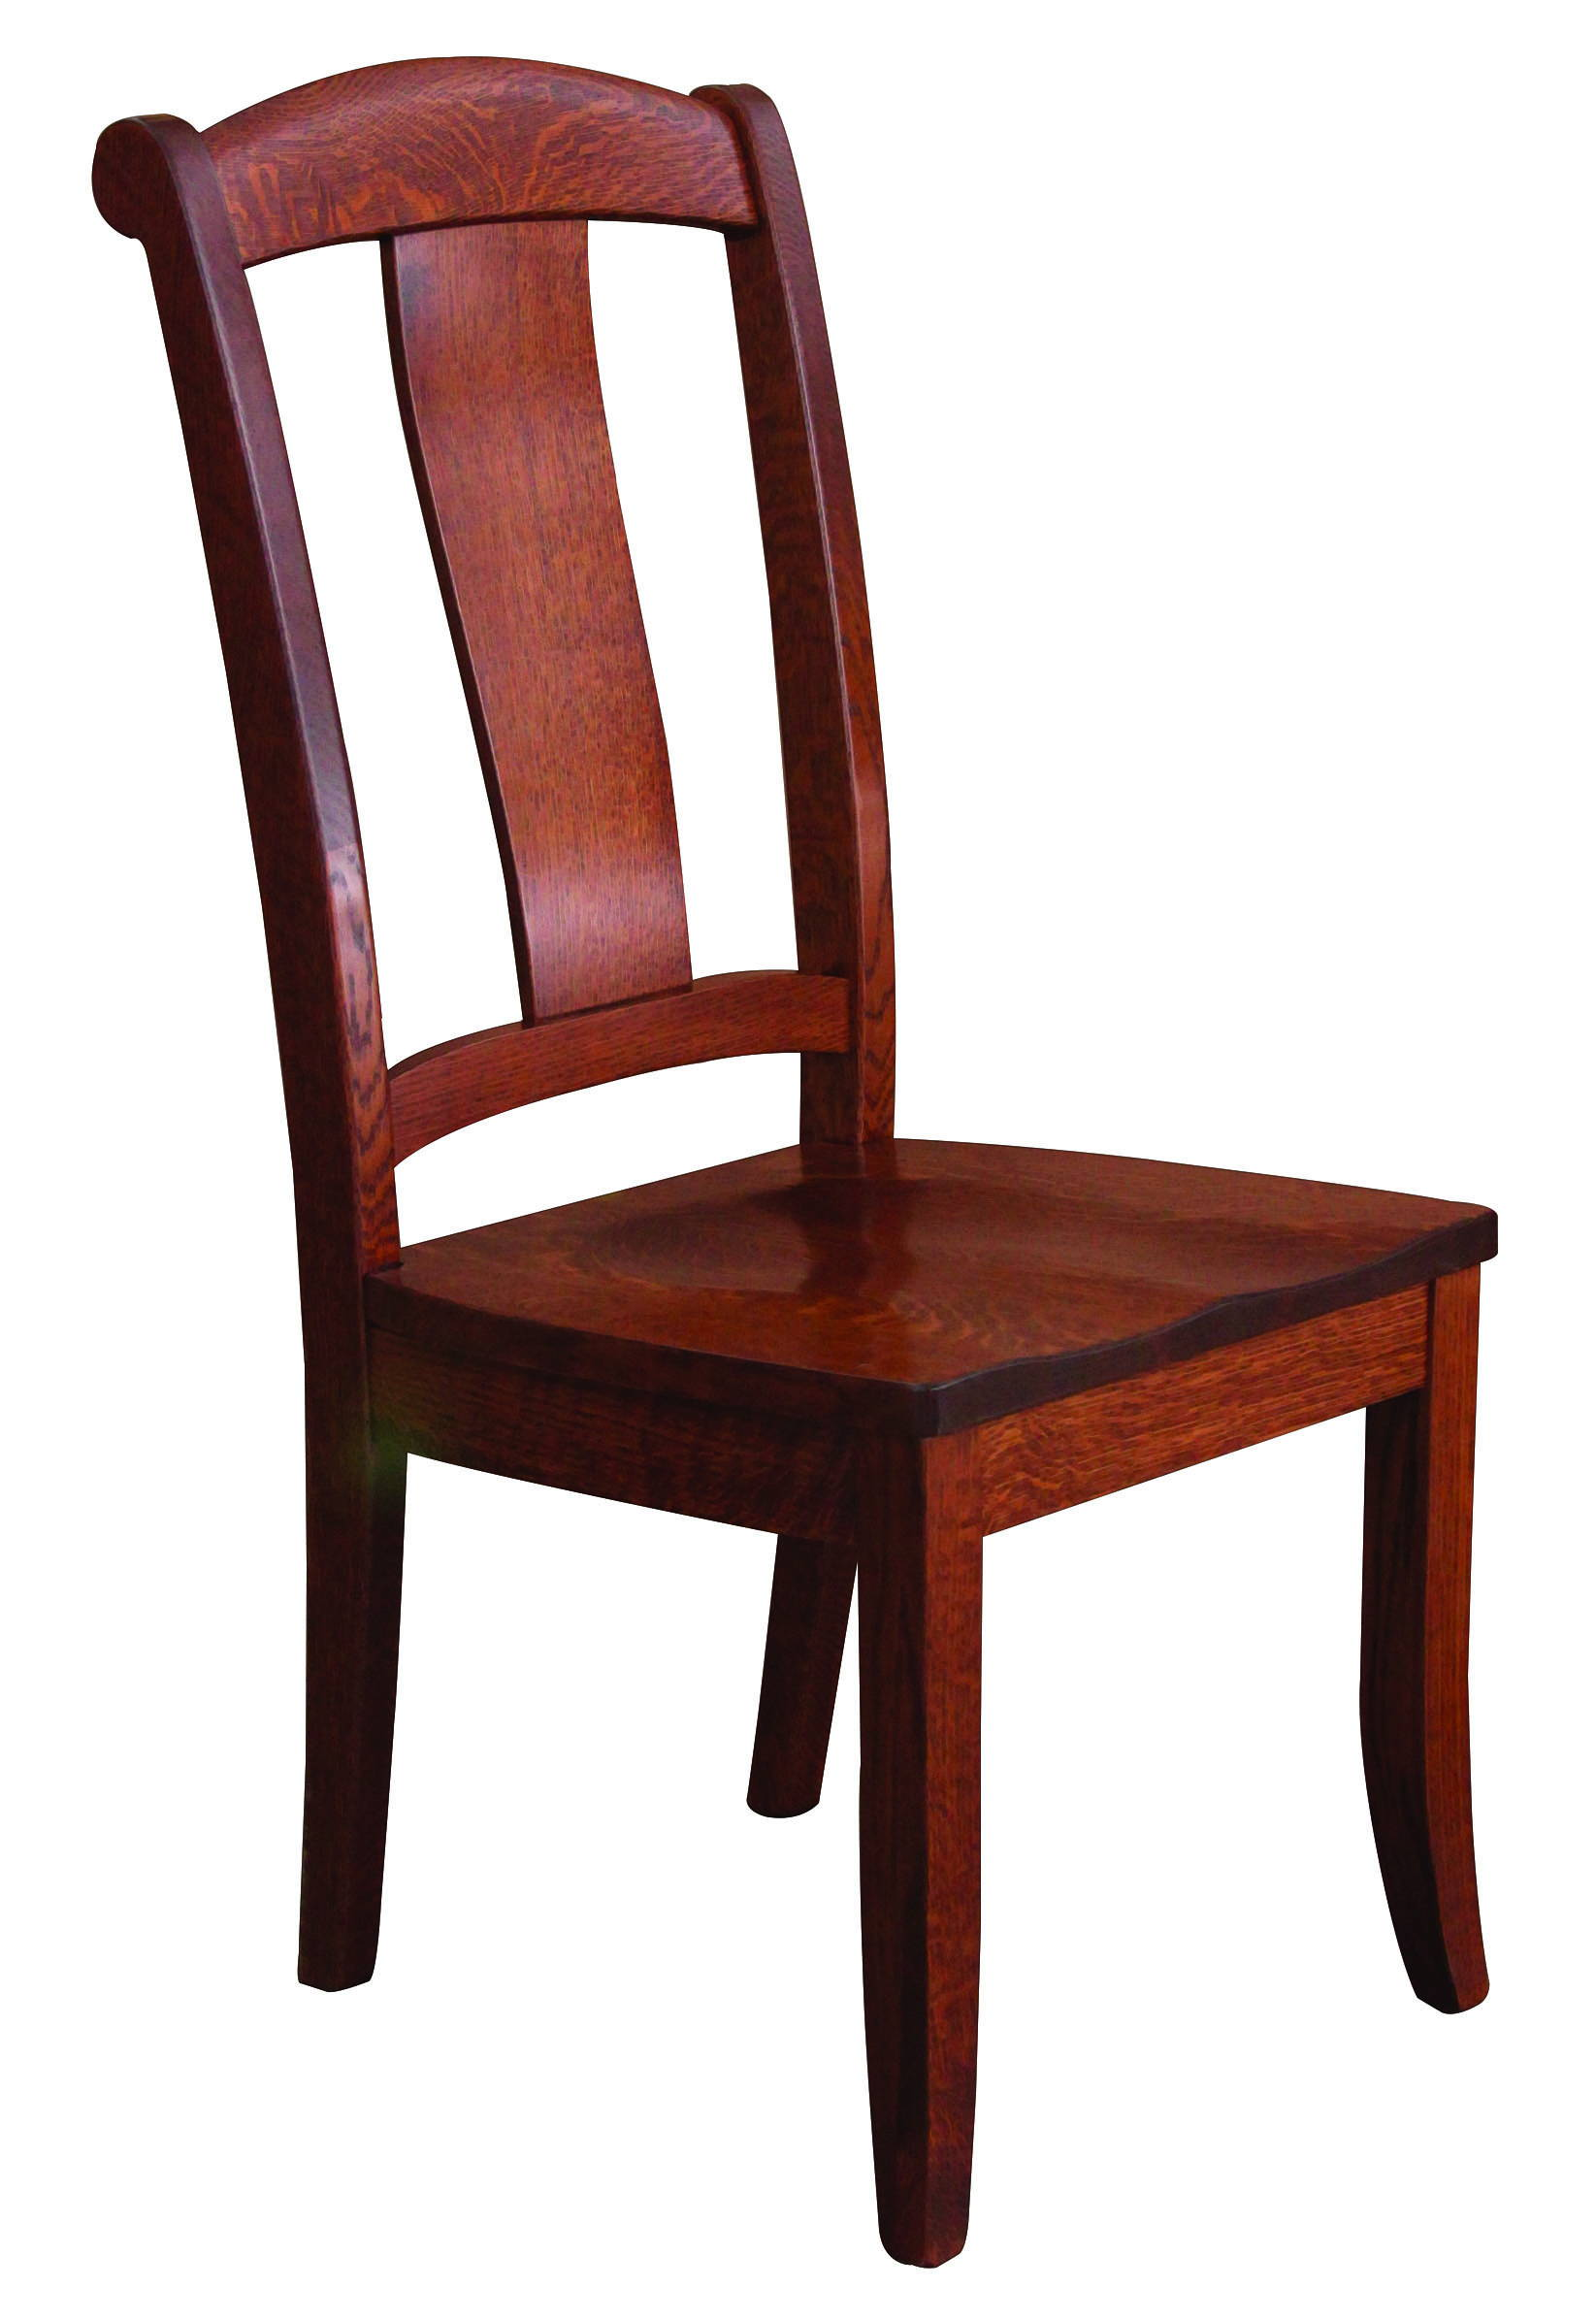 Master Solid Wood, Handcrafted Kitchen Chair or DIning Chair from Harvest Home Interiors Amish Furniture